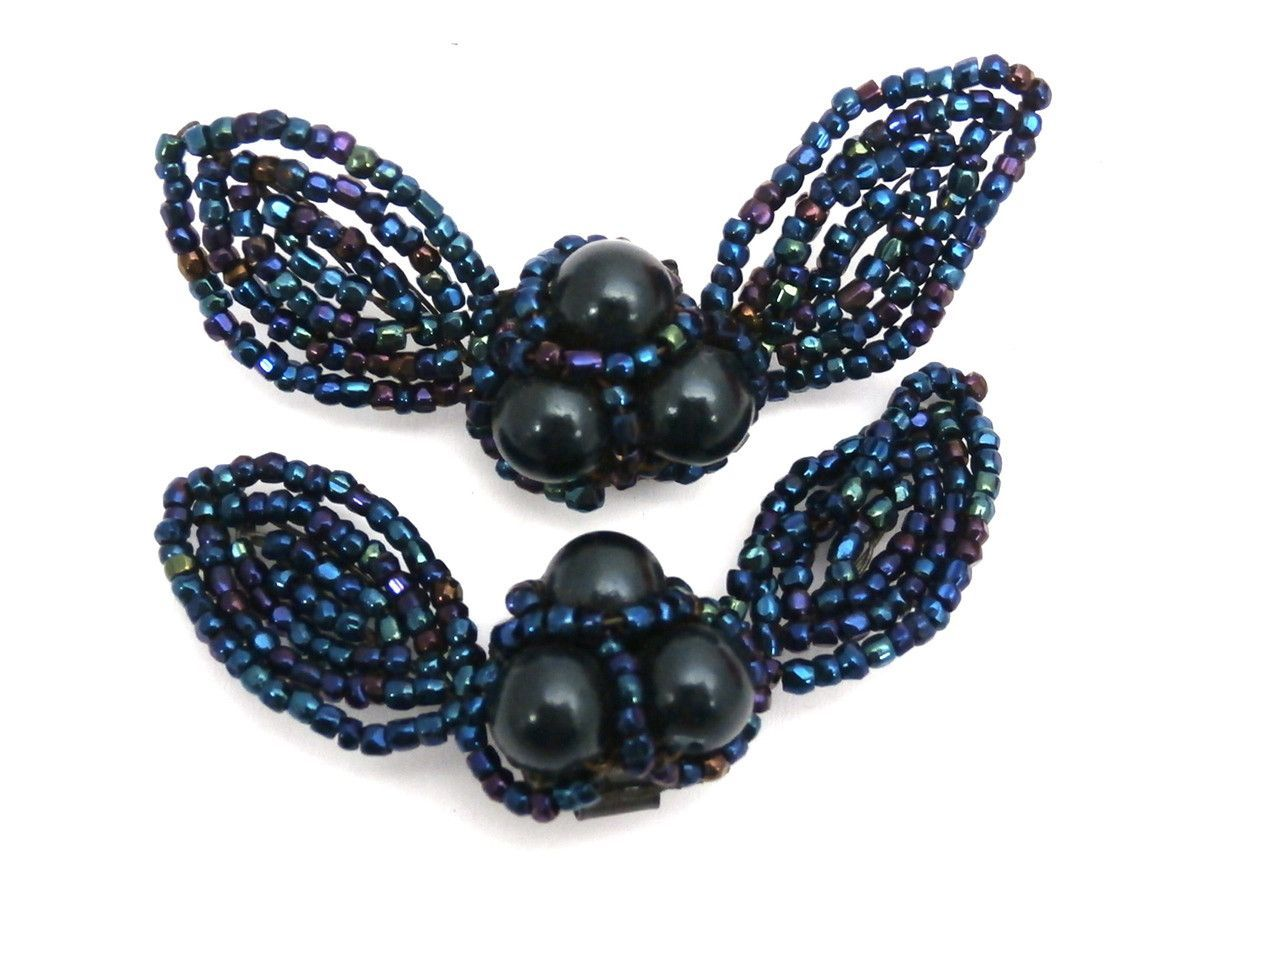 Vintage 1940s Shoe Buckles Blue Carnival Glass Bows 2.5""""